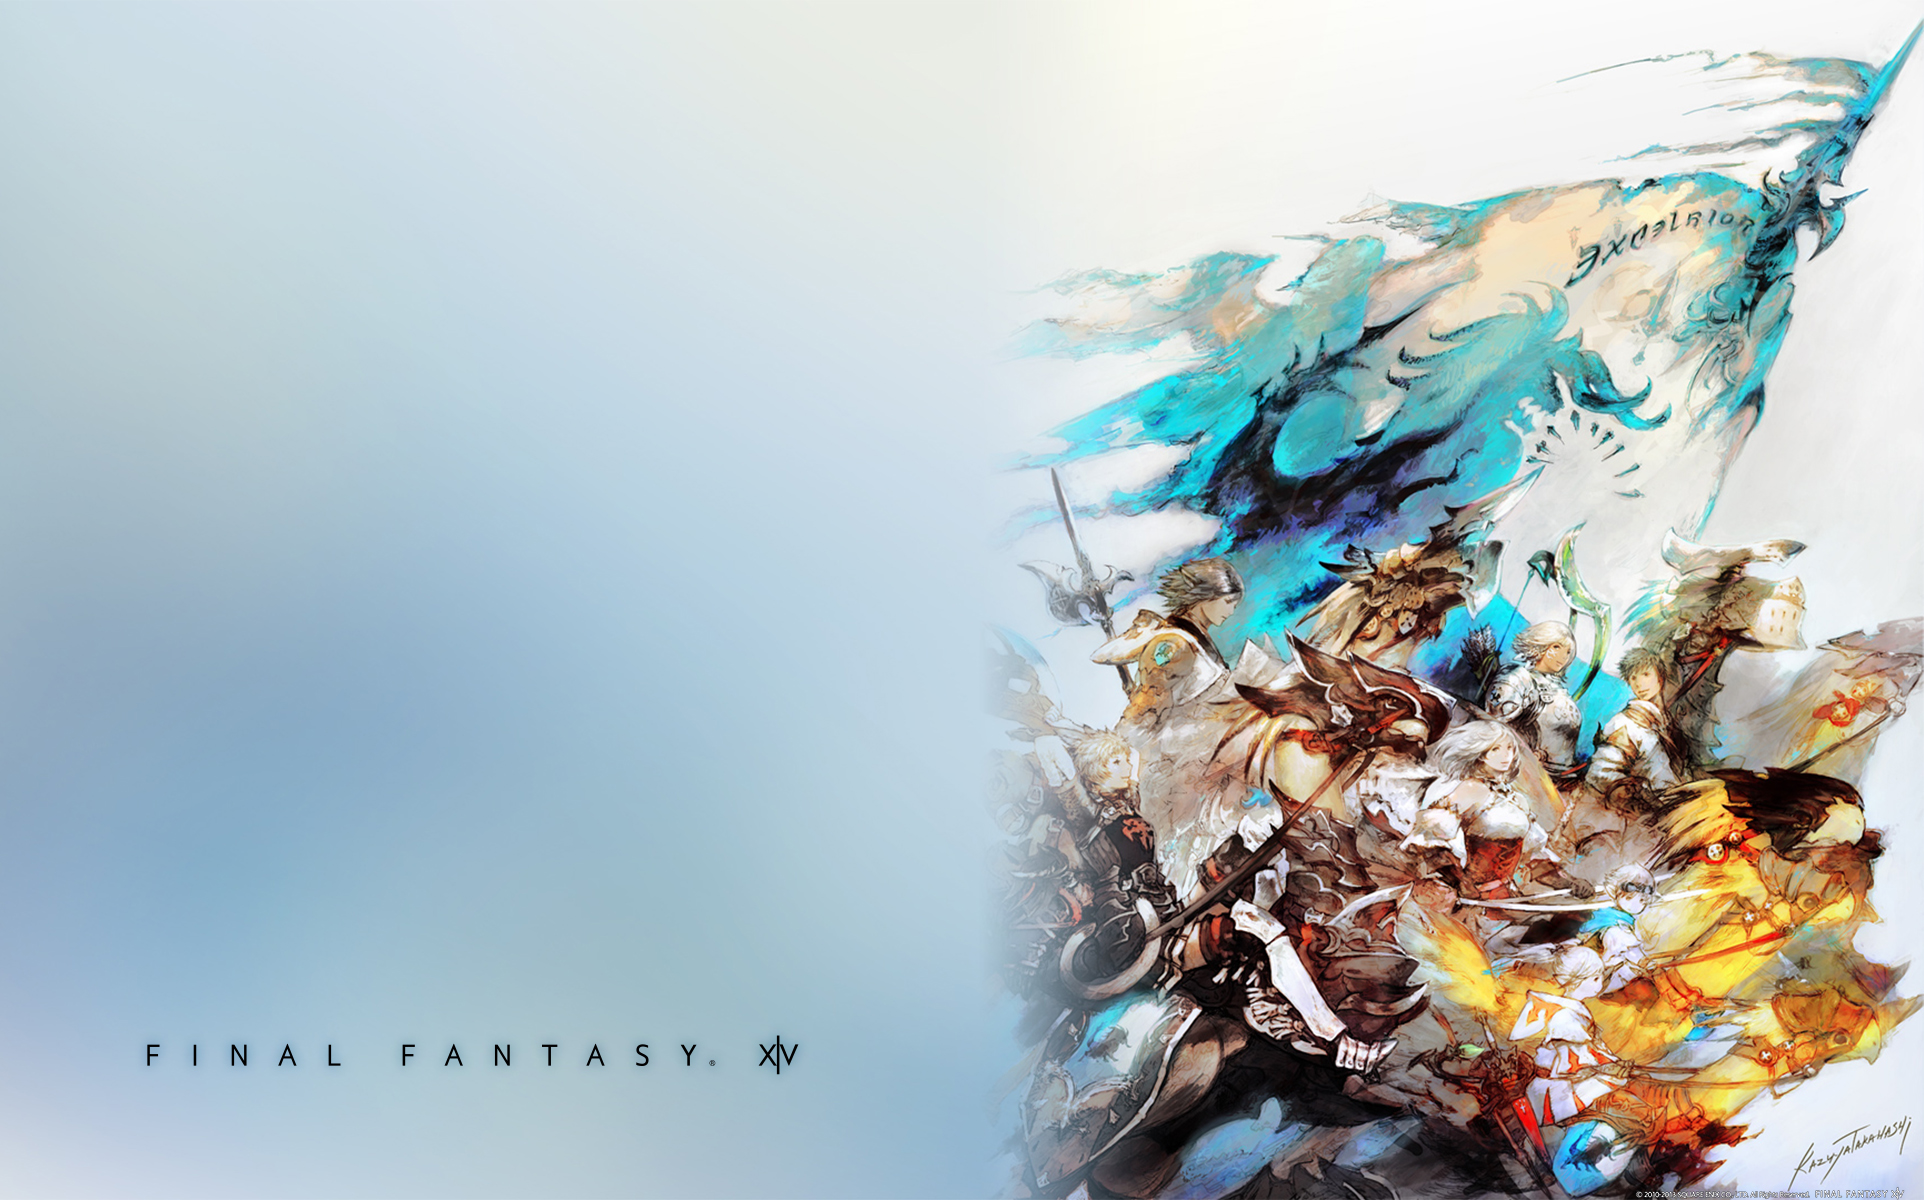 Image Xiv Wallpaper 04 Jpg Final Fantasy Wiki Fandom Powered